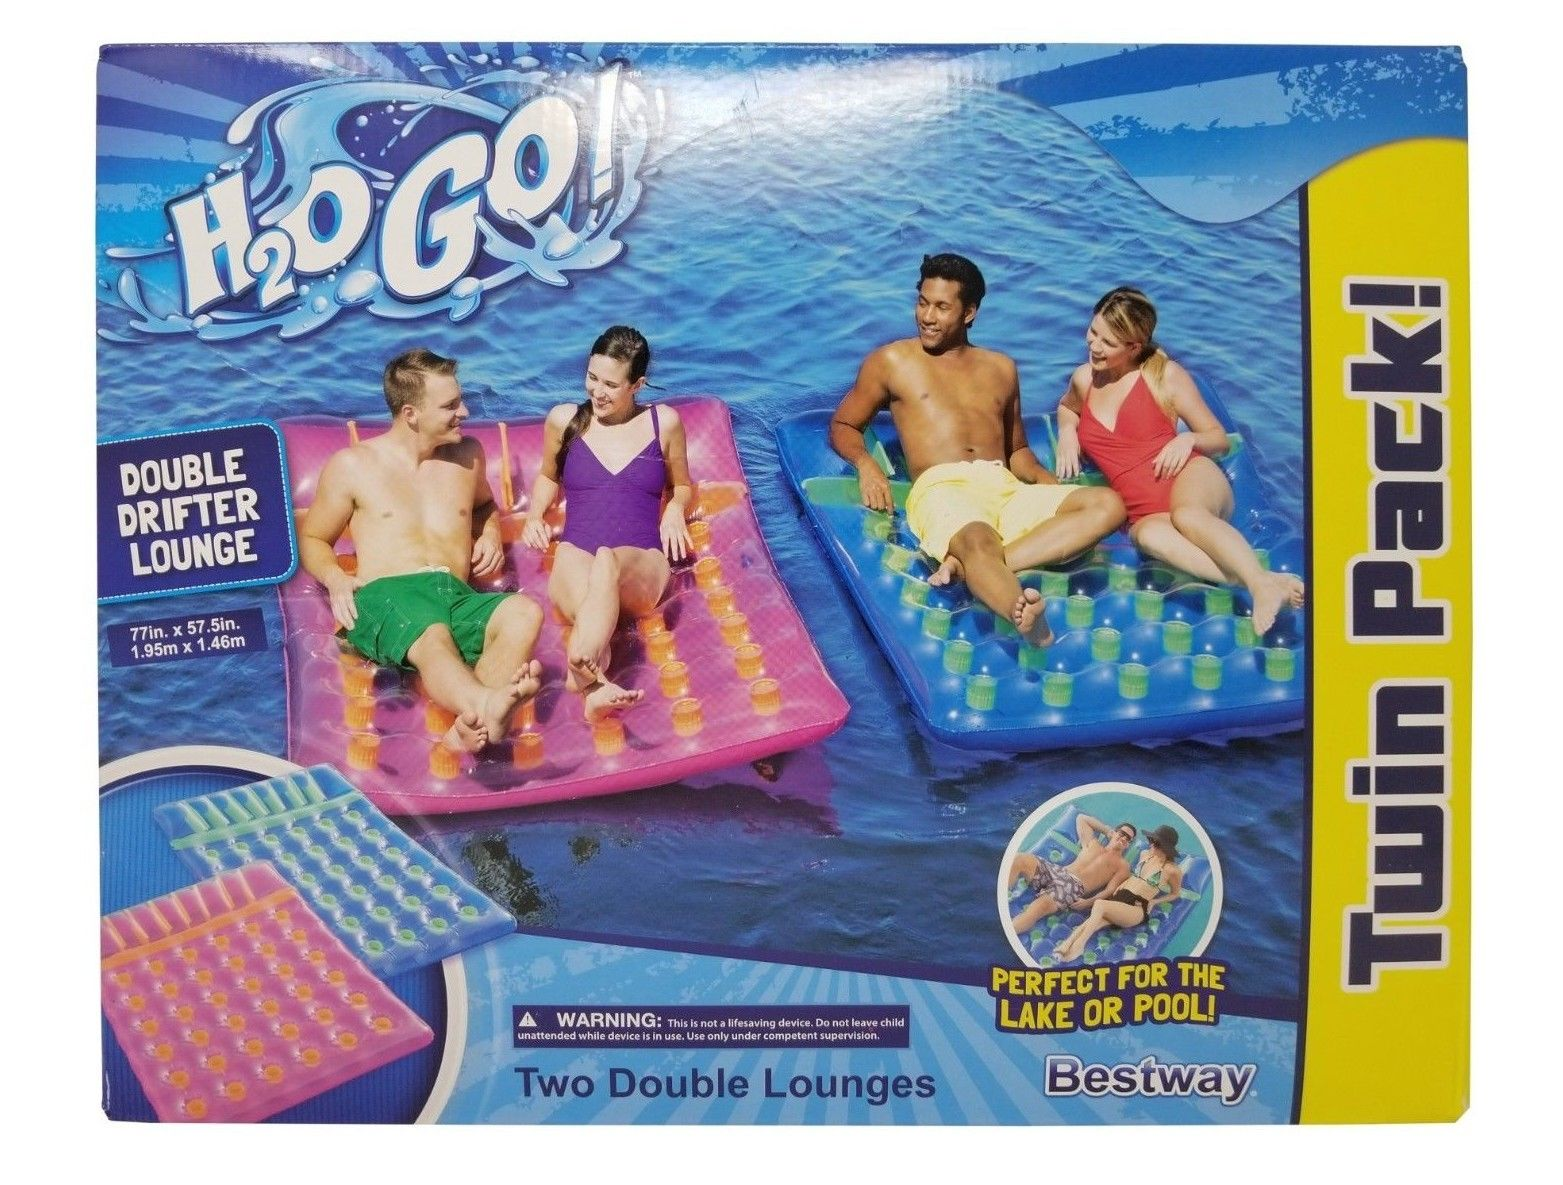 Bestway H2O Go! Double Drifter Lounges 77 x 57.5 inches - Twin Pack ...